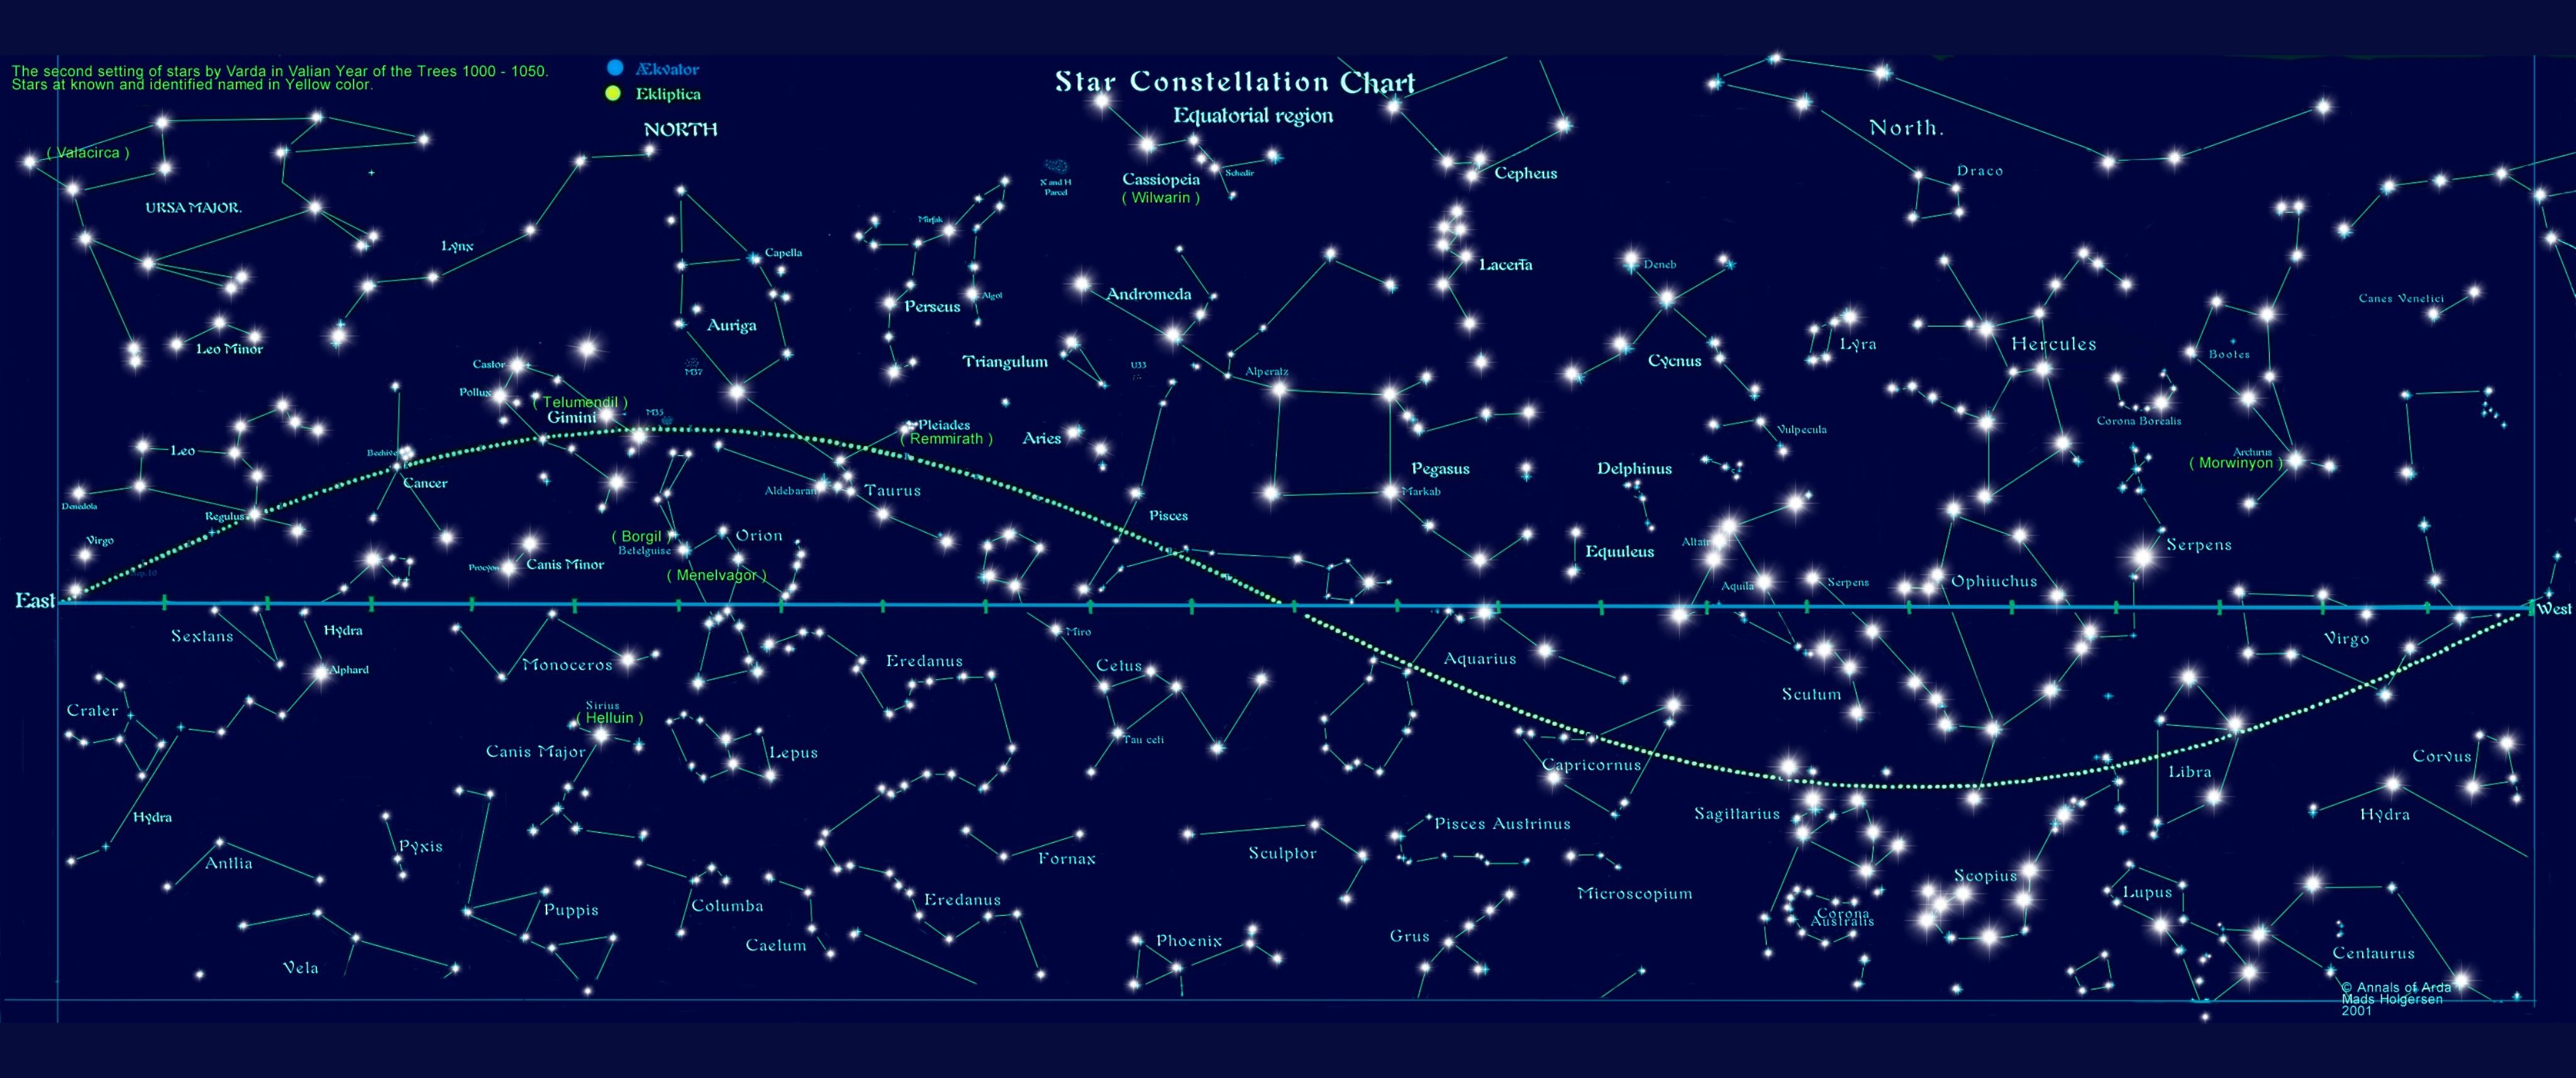 Star Constellation Map How To See The Stars: The Ultimate Constellation Image Gallery  Star Constellation Map